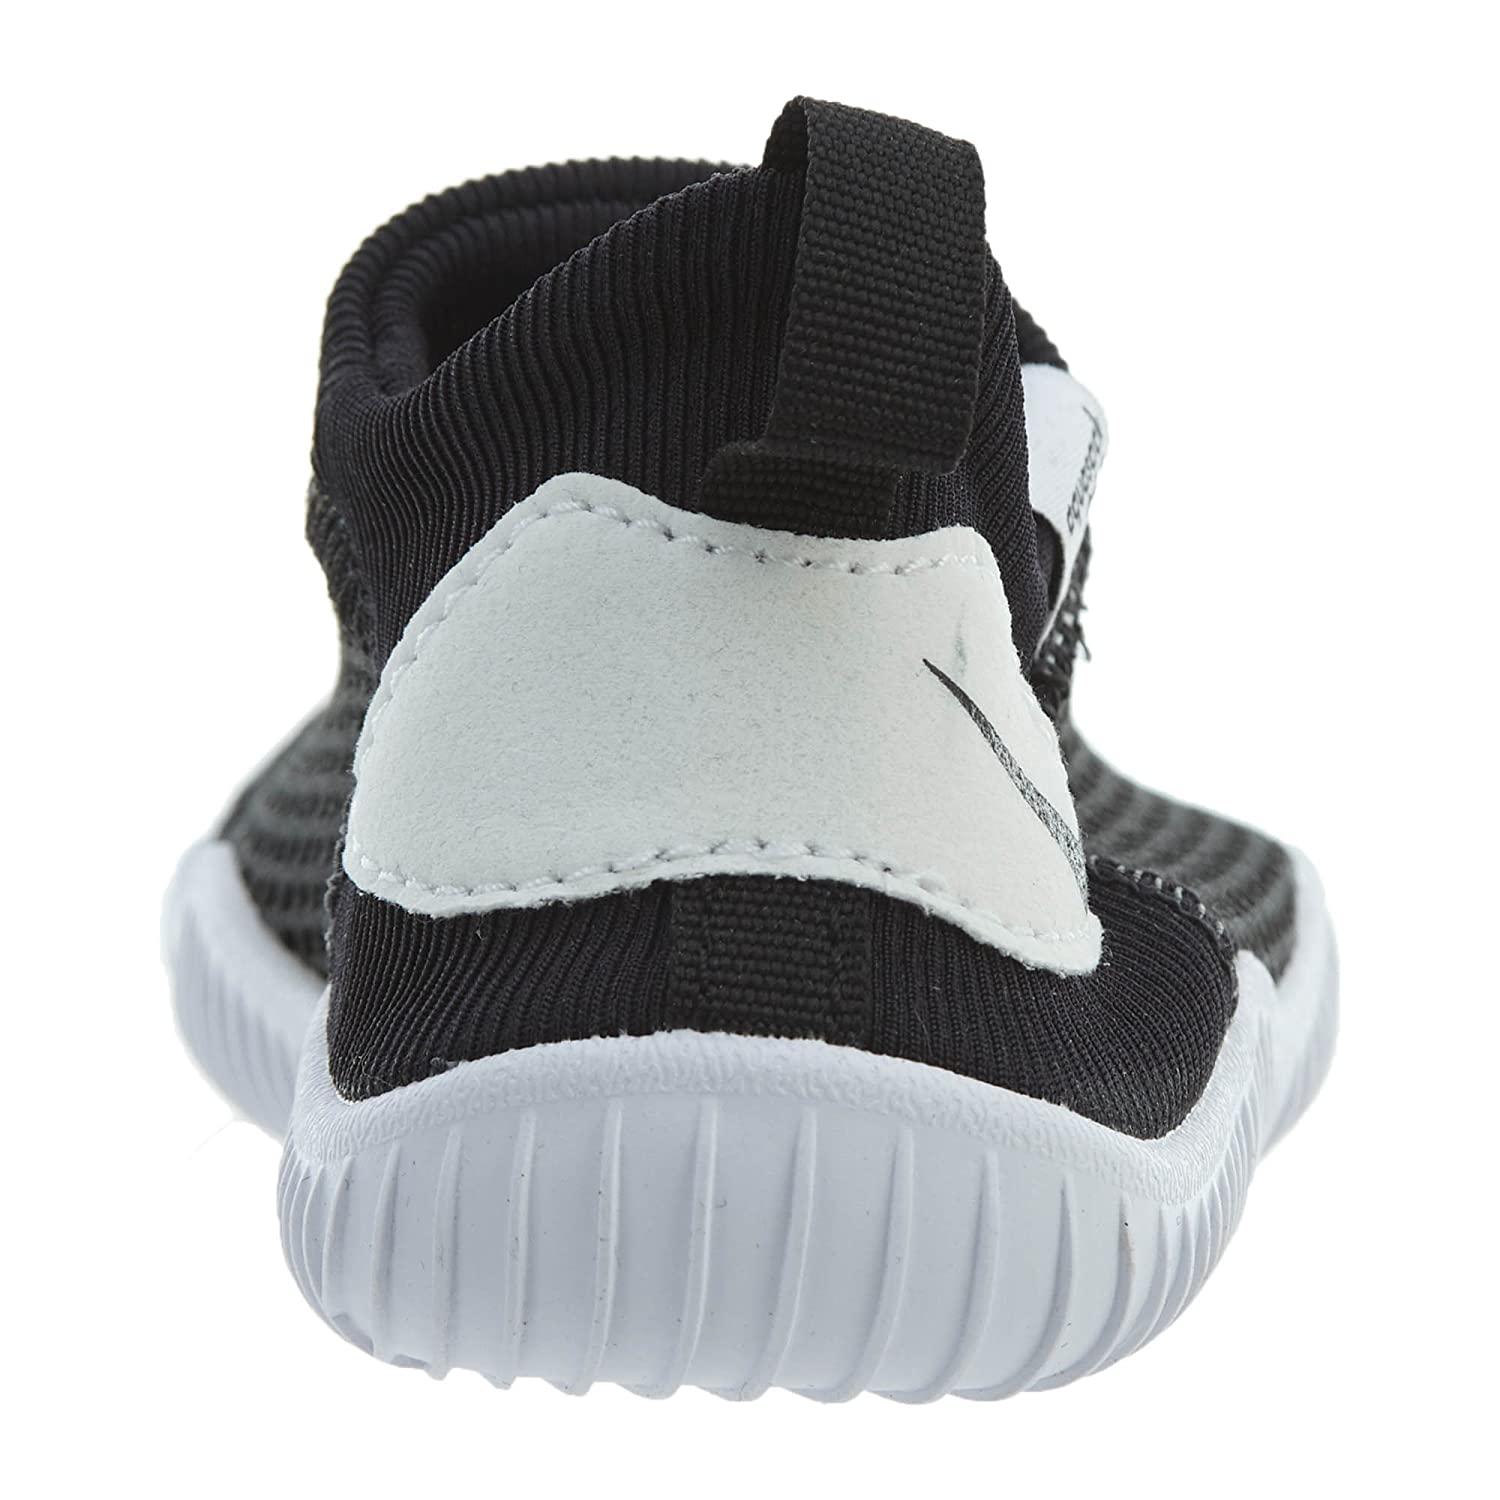 Nike Toddler Boys Aqua Sock 360 Sneakers